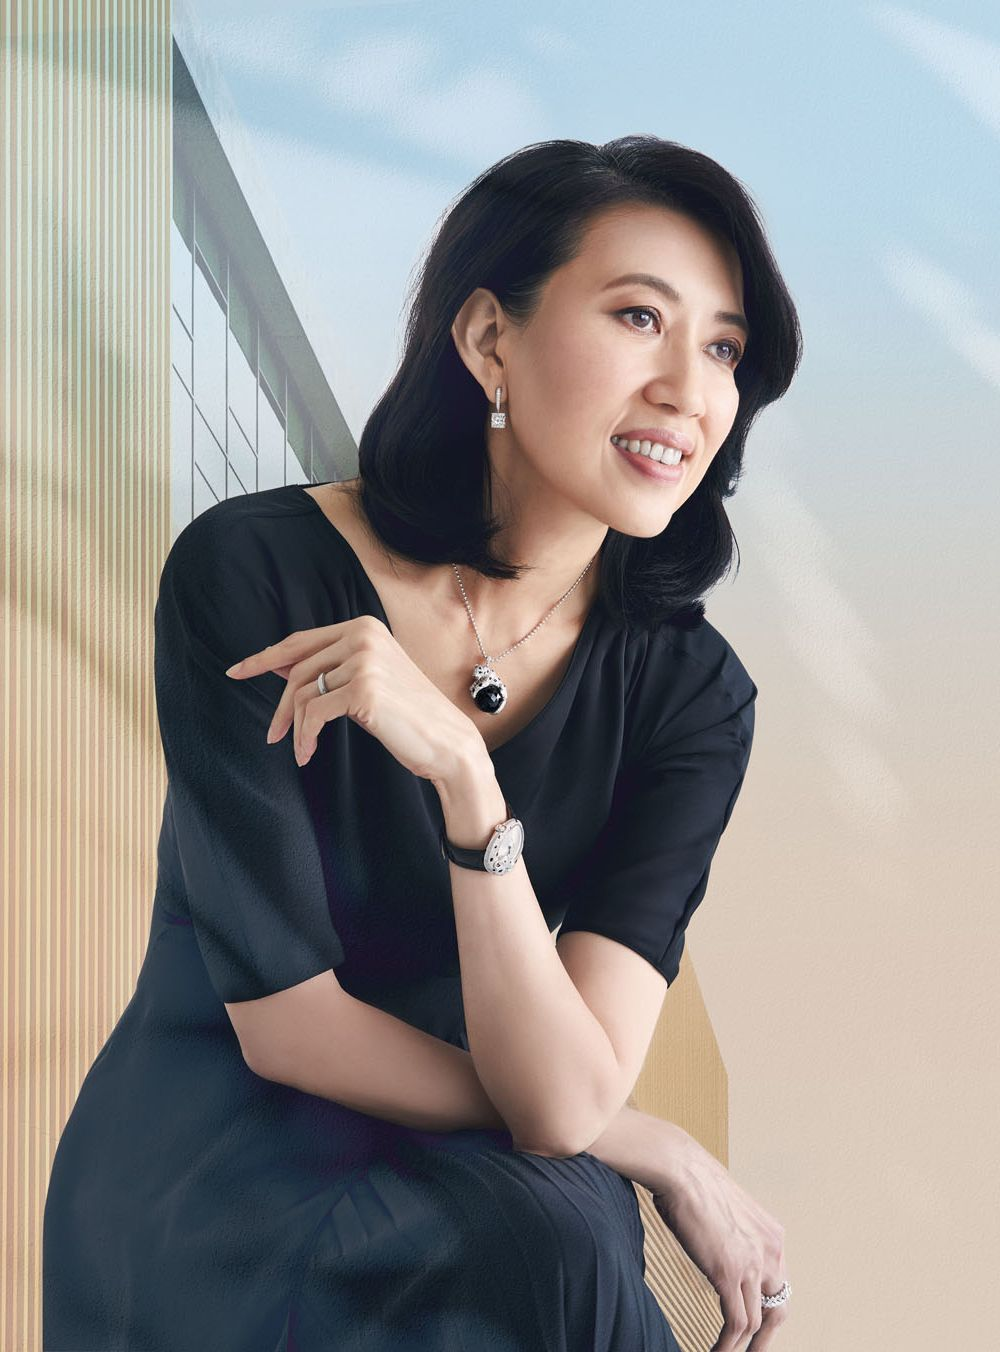 Architects CEO Angelene Chan's design for the Sunray Woodcraft Construction Headquarters won her Design of the Year at the President's Design Award in 2015.    She wears pleated silk dress by Prada; High Jewellery 1895 earrings in platinum with diamonds, Panthère de Cartier necklace in white gold with emeralds and onyx, Panthère Lovée watch in white gold with diamonds, emerald and black lacquer, and Reflection de Cartier ring in white gold with diamonds, all by Cartier